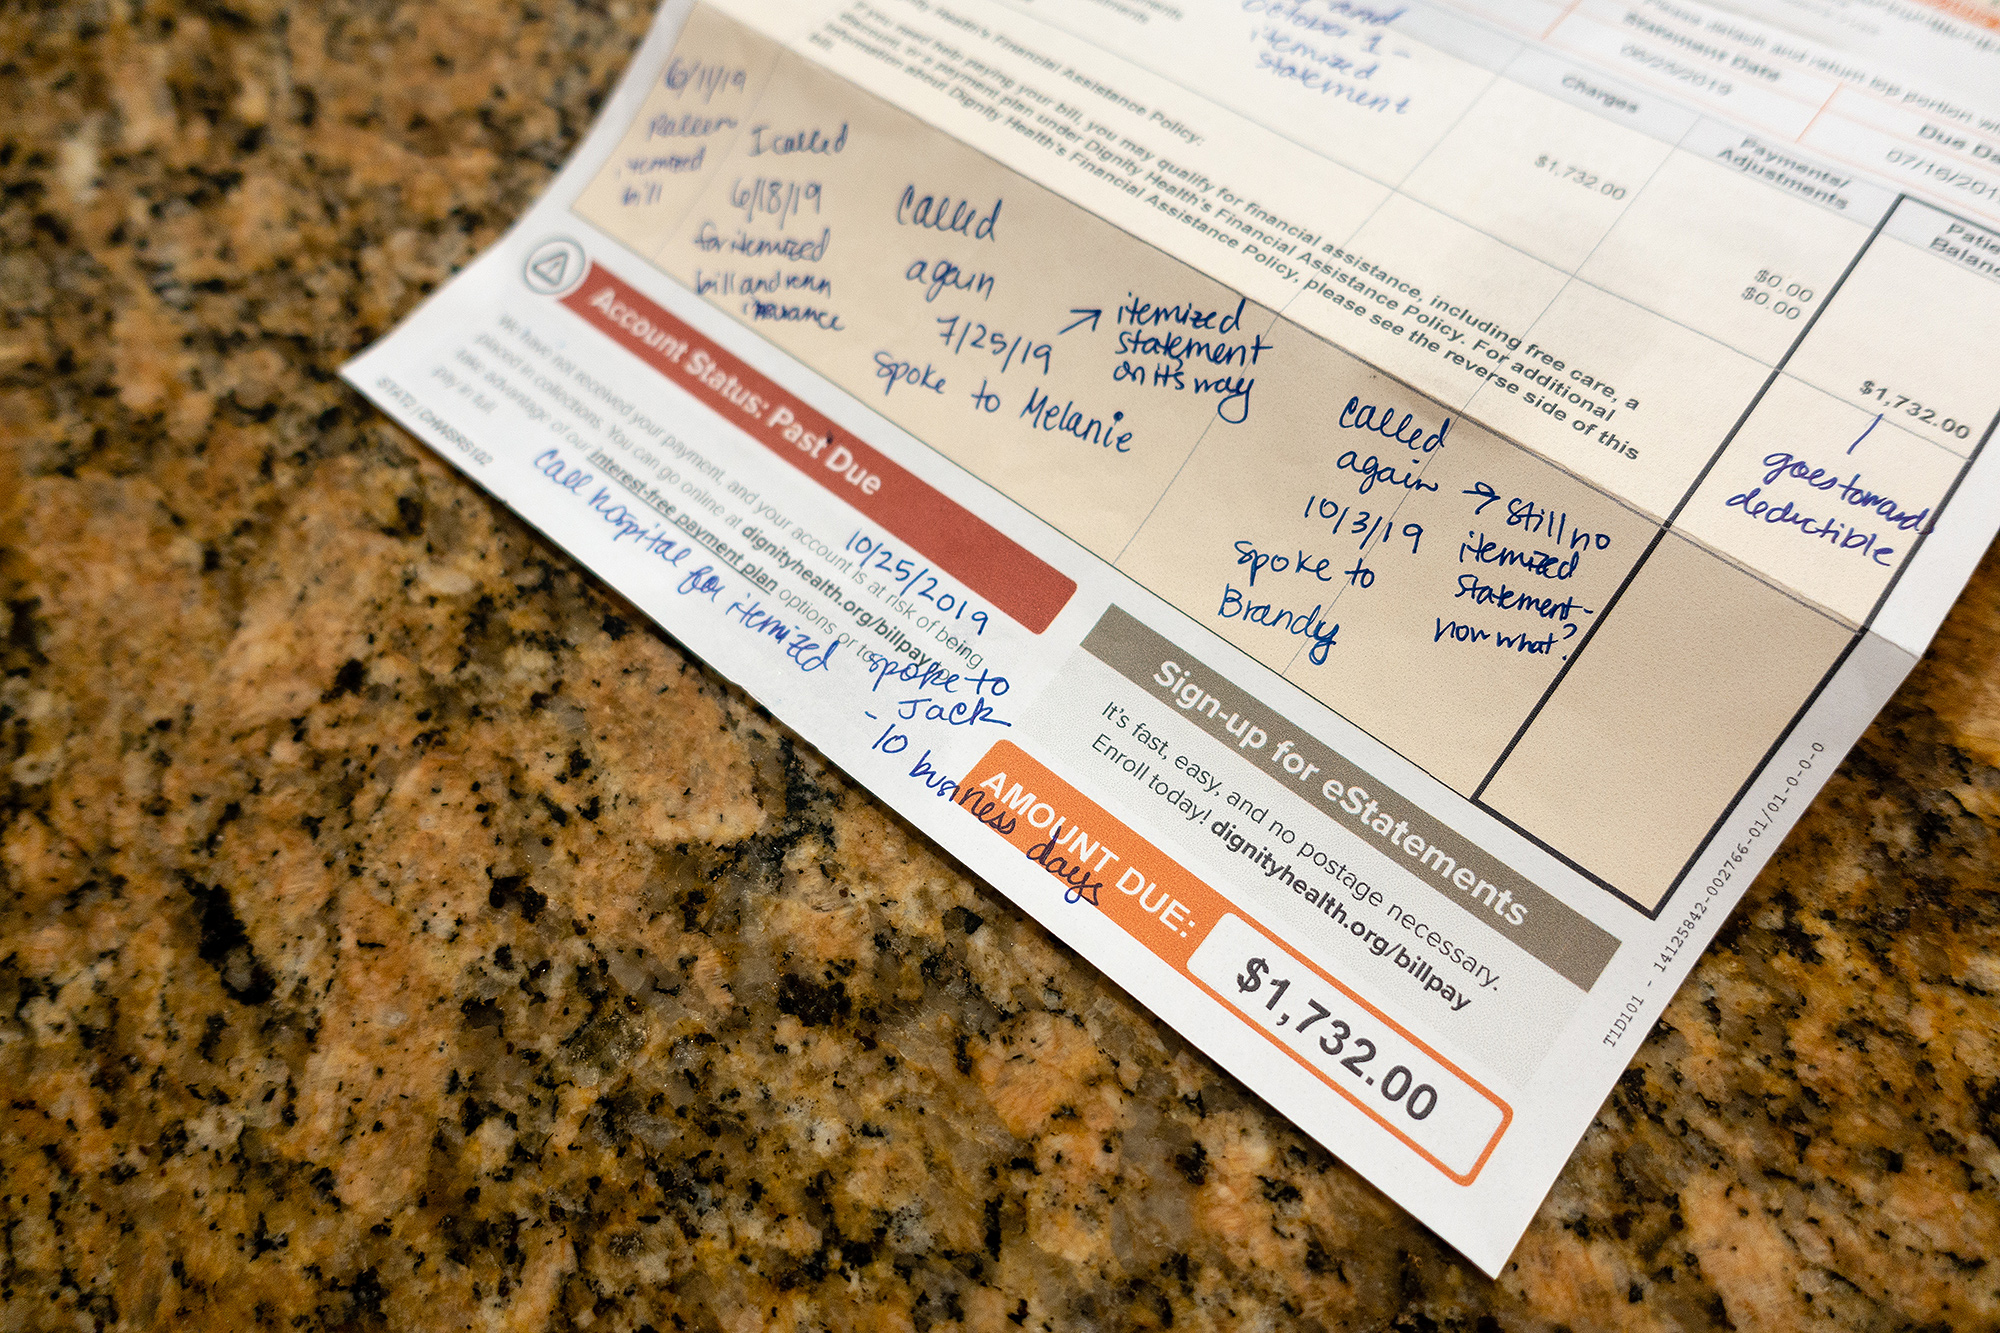 The Bransons received a $2,658.98 bill, including a $1,732 charge from a visit to the hospital emergency department.